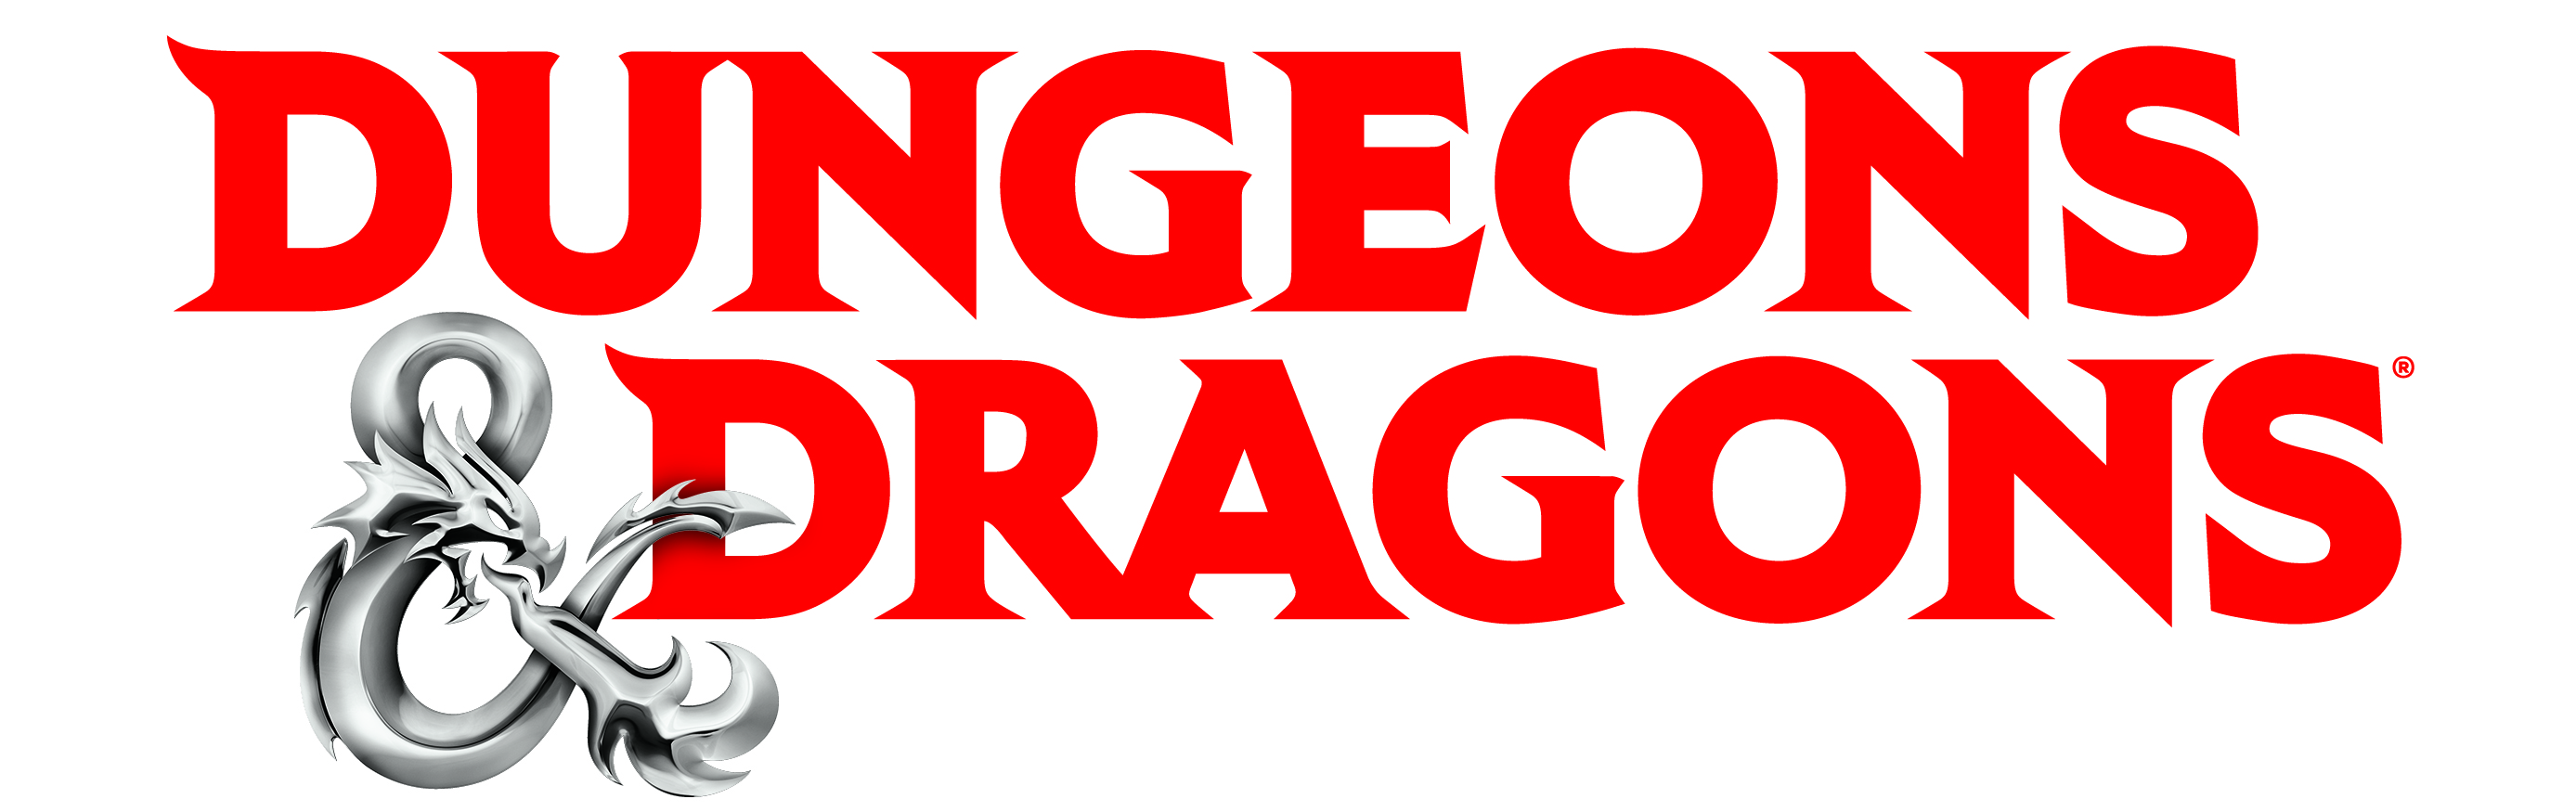 Dungeons and Dragons logo Wallpaper